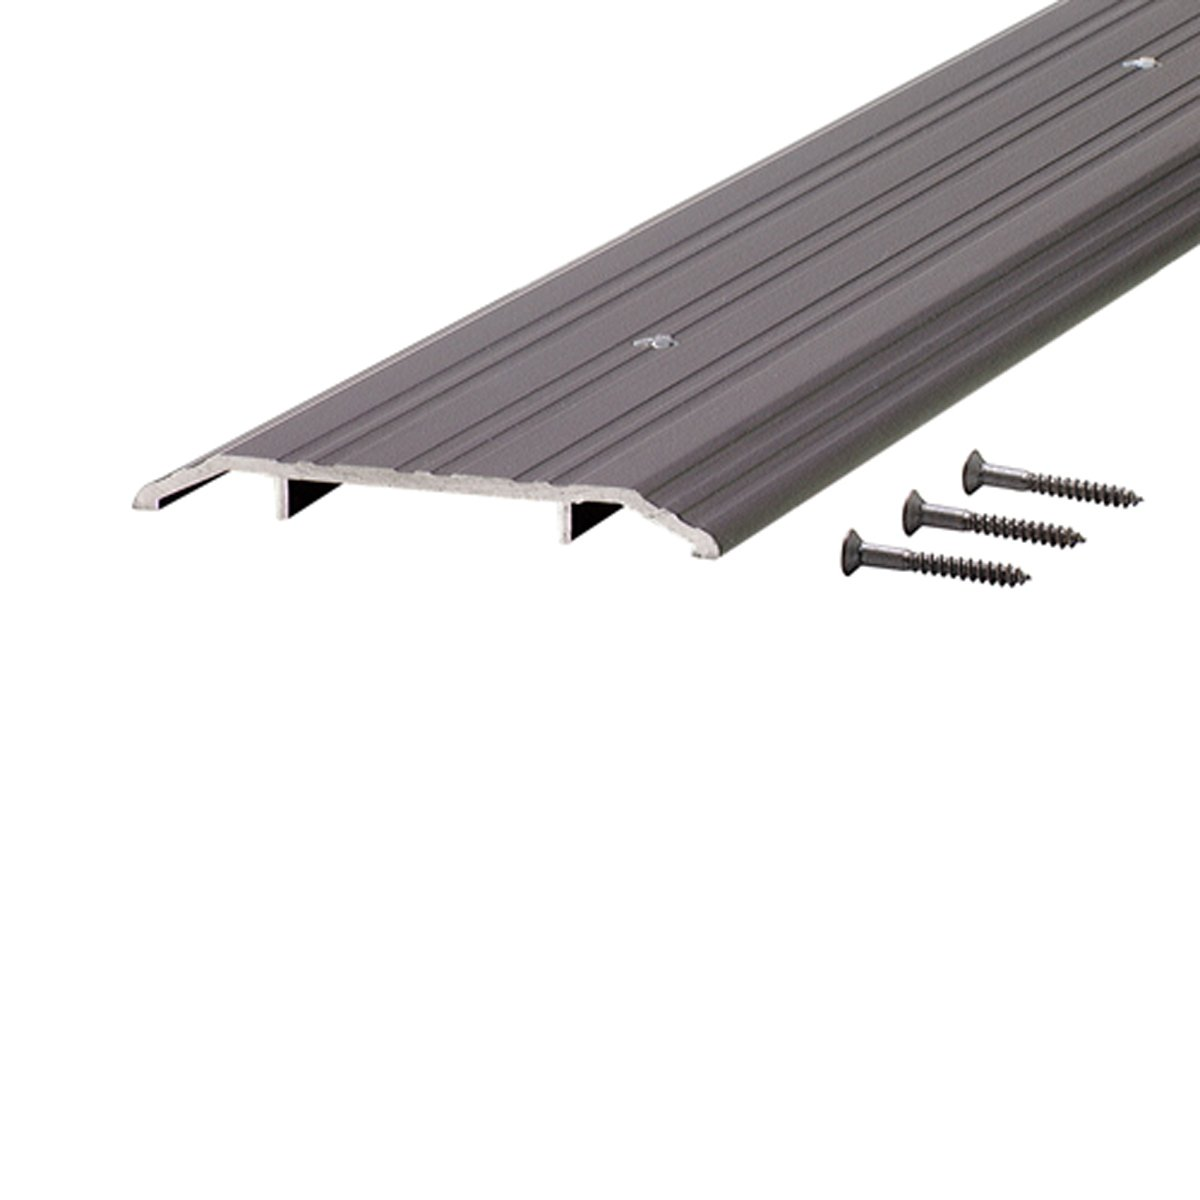 M-D Building Products 68346 1/2-Inch by 5-Inch - 36-Inch TH015 Fluted Saddle, Bronze